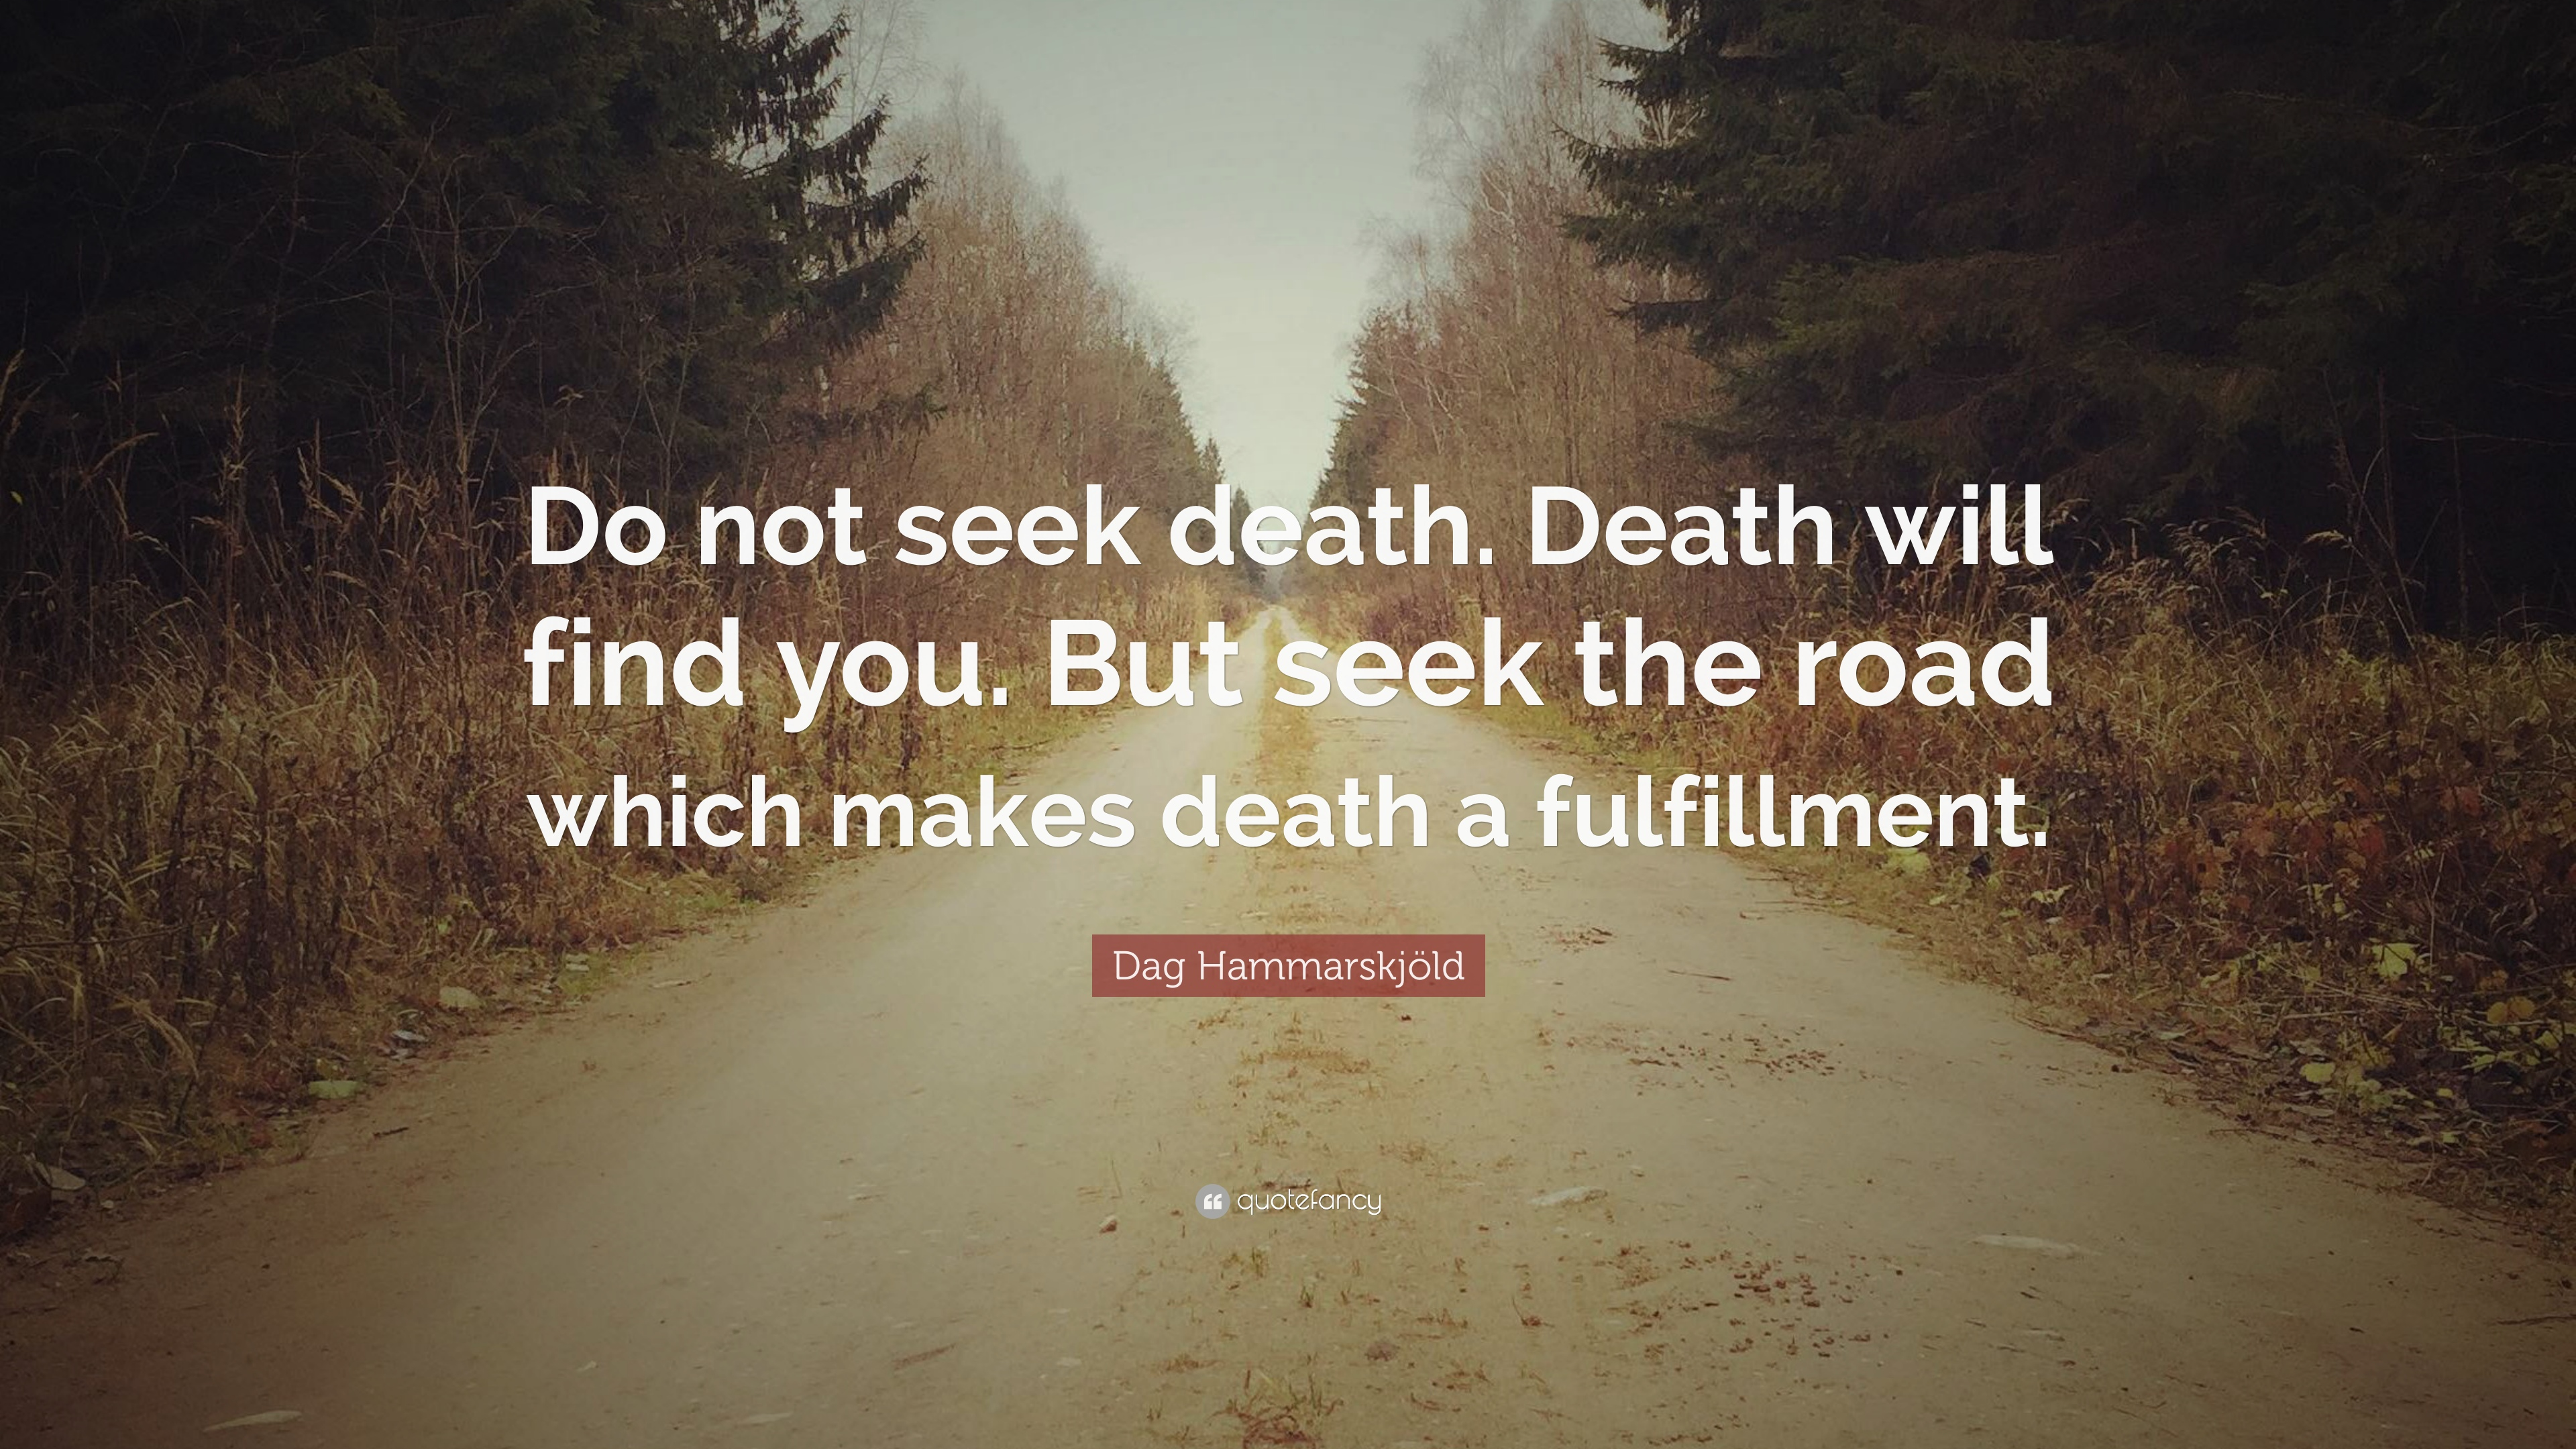 Beau Dag Hammarskjöld Quote: U201cDo Not Seek Death. Death Will Find You. But